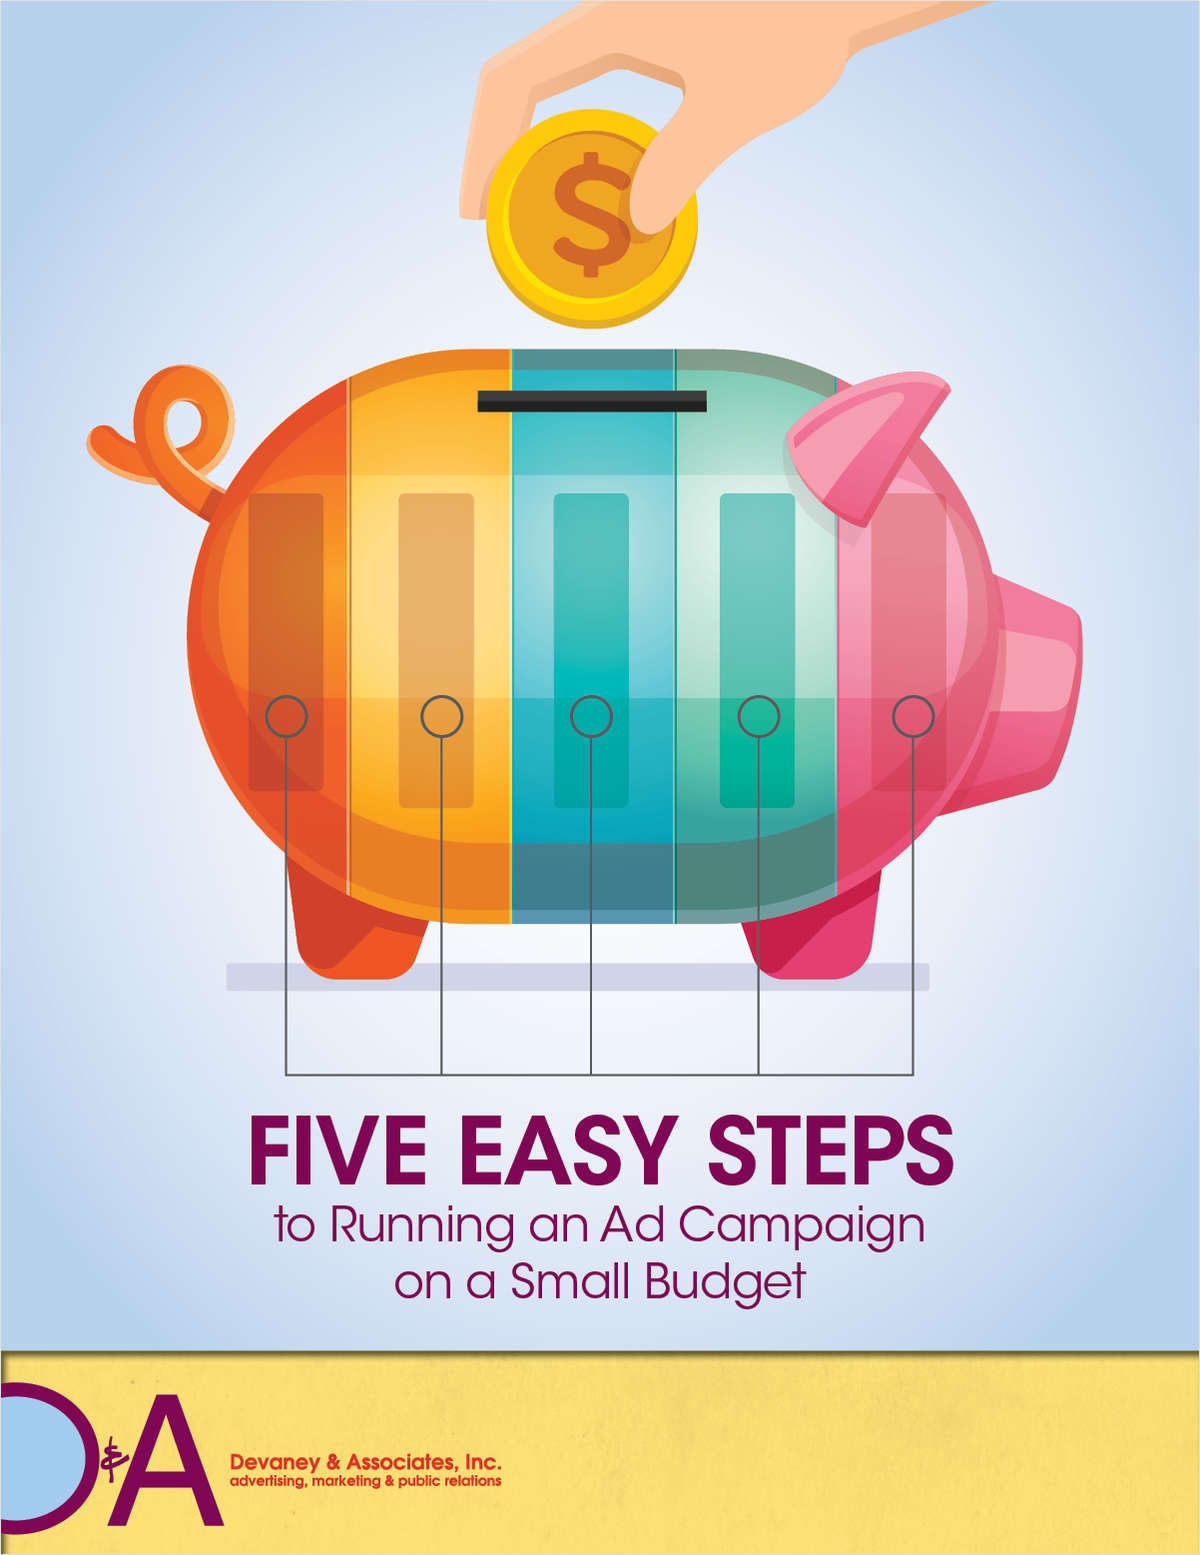 5 Easy Steps to Running an Ad Campaign on a Small Budget